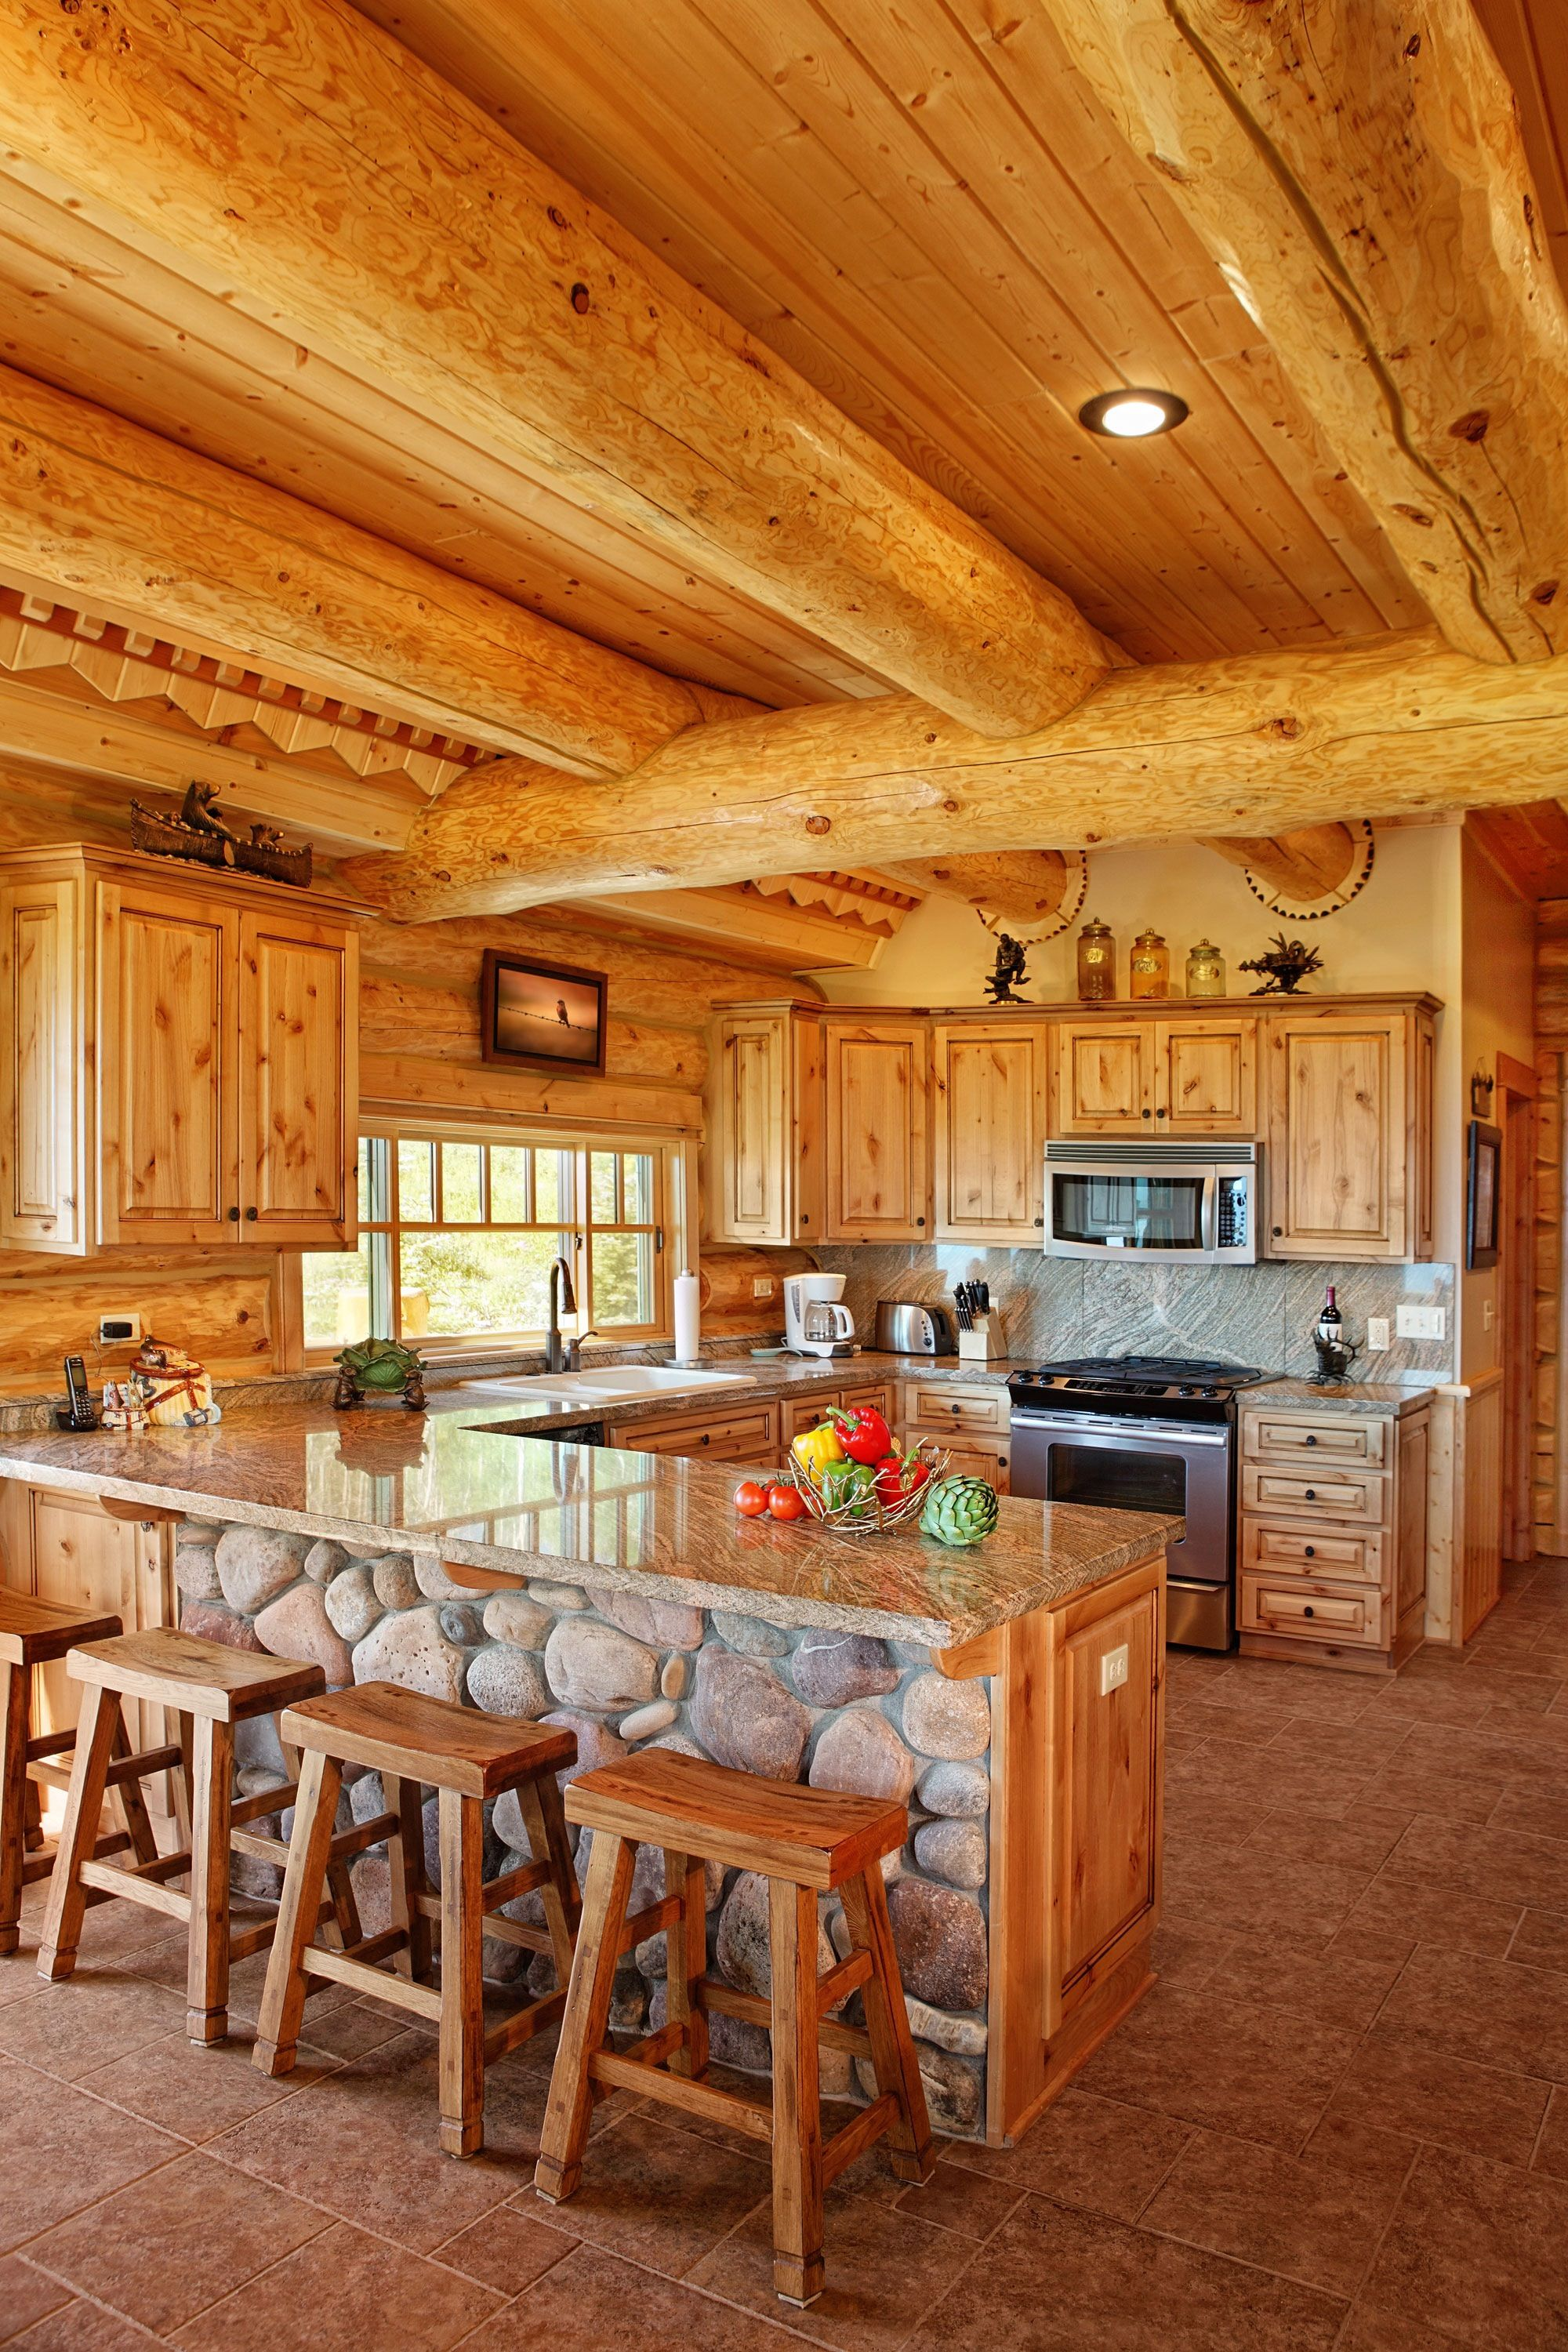 Log Home Kitchen Log Home Kitchens Log Cabin Kitchens Cabin Kitchens